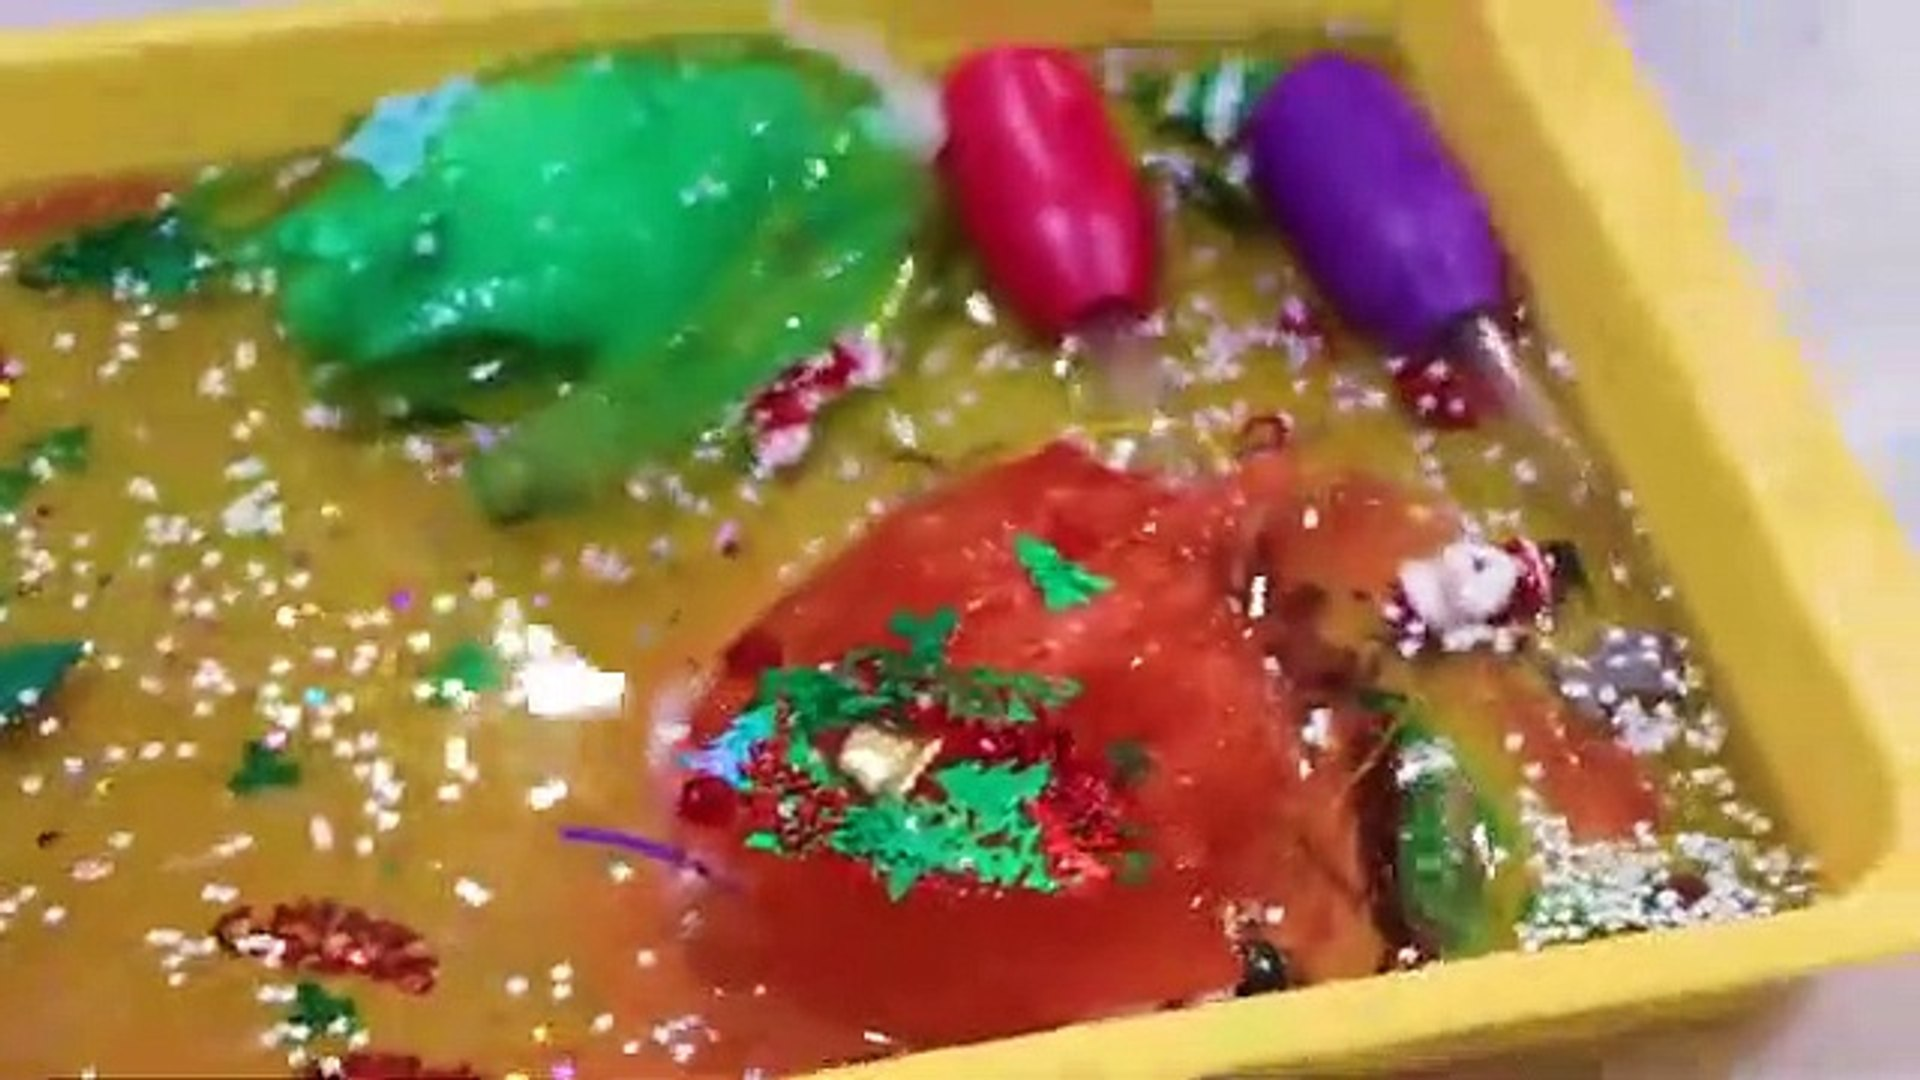 Ice Balloon Melting Animals Easy Science Experiments for kid and more kids activities!!